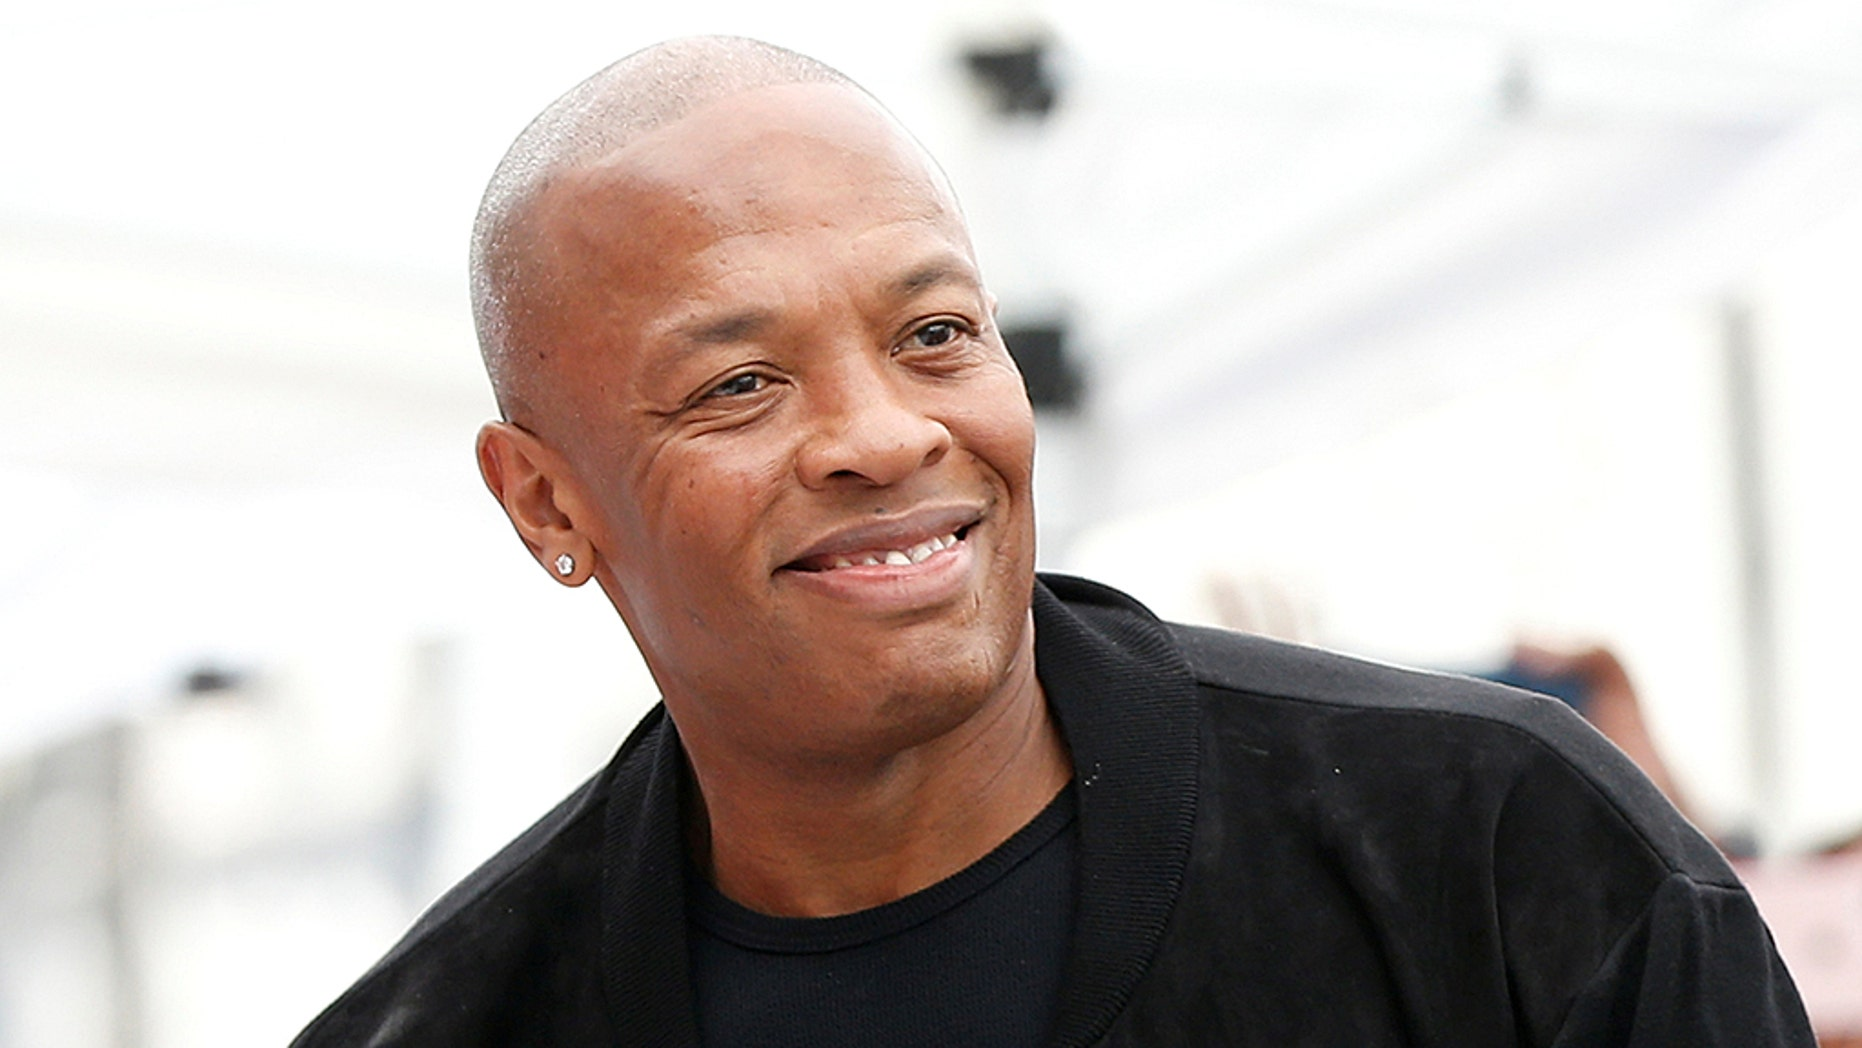 Dr. Dre's show will not make it to Apple.